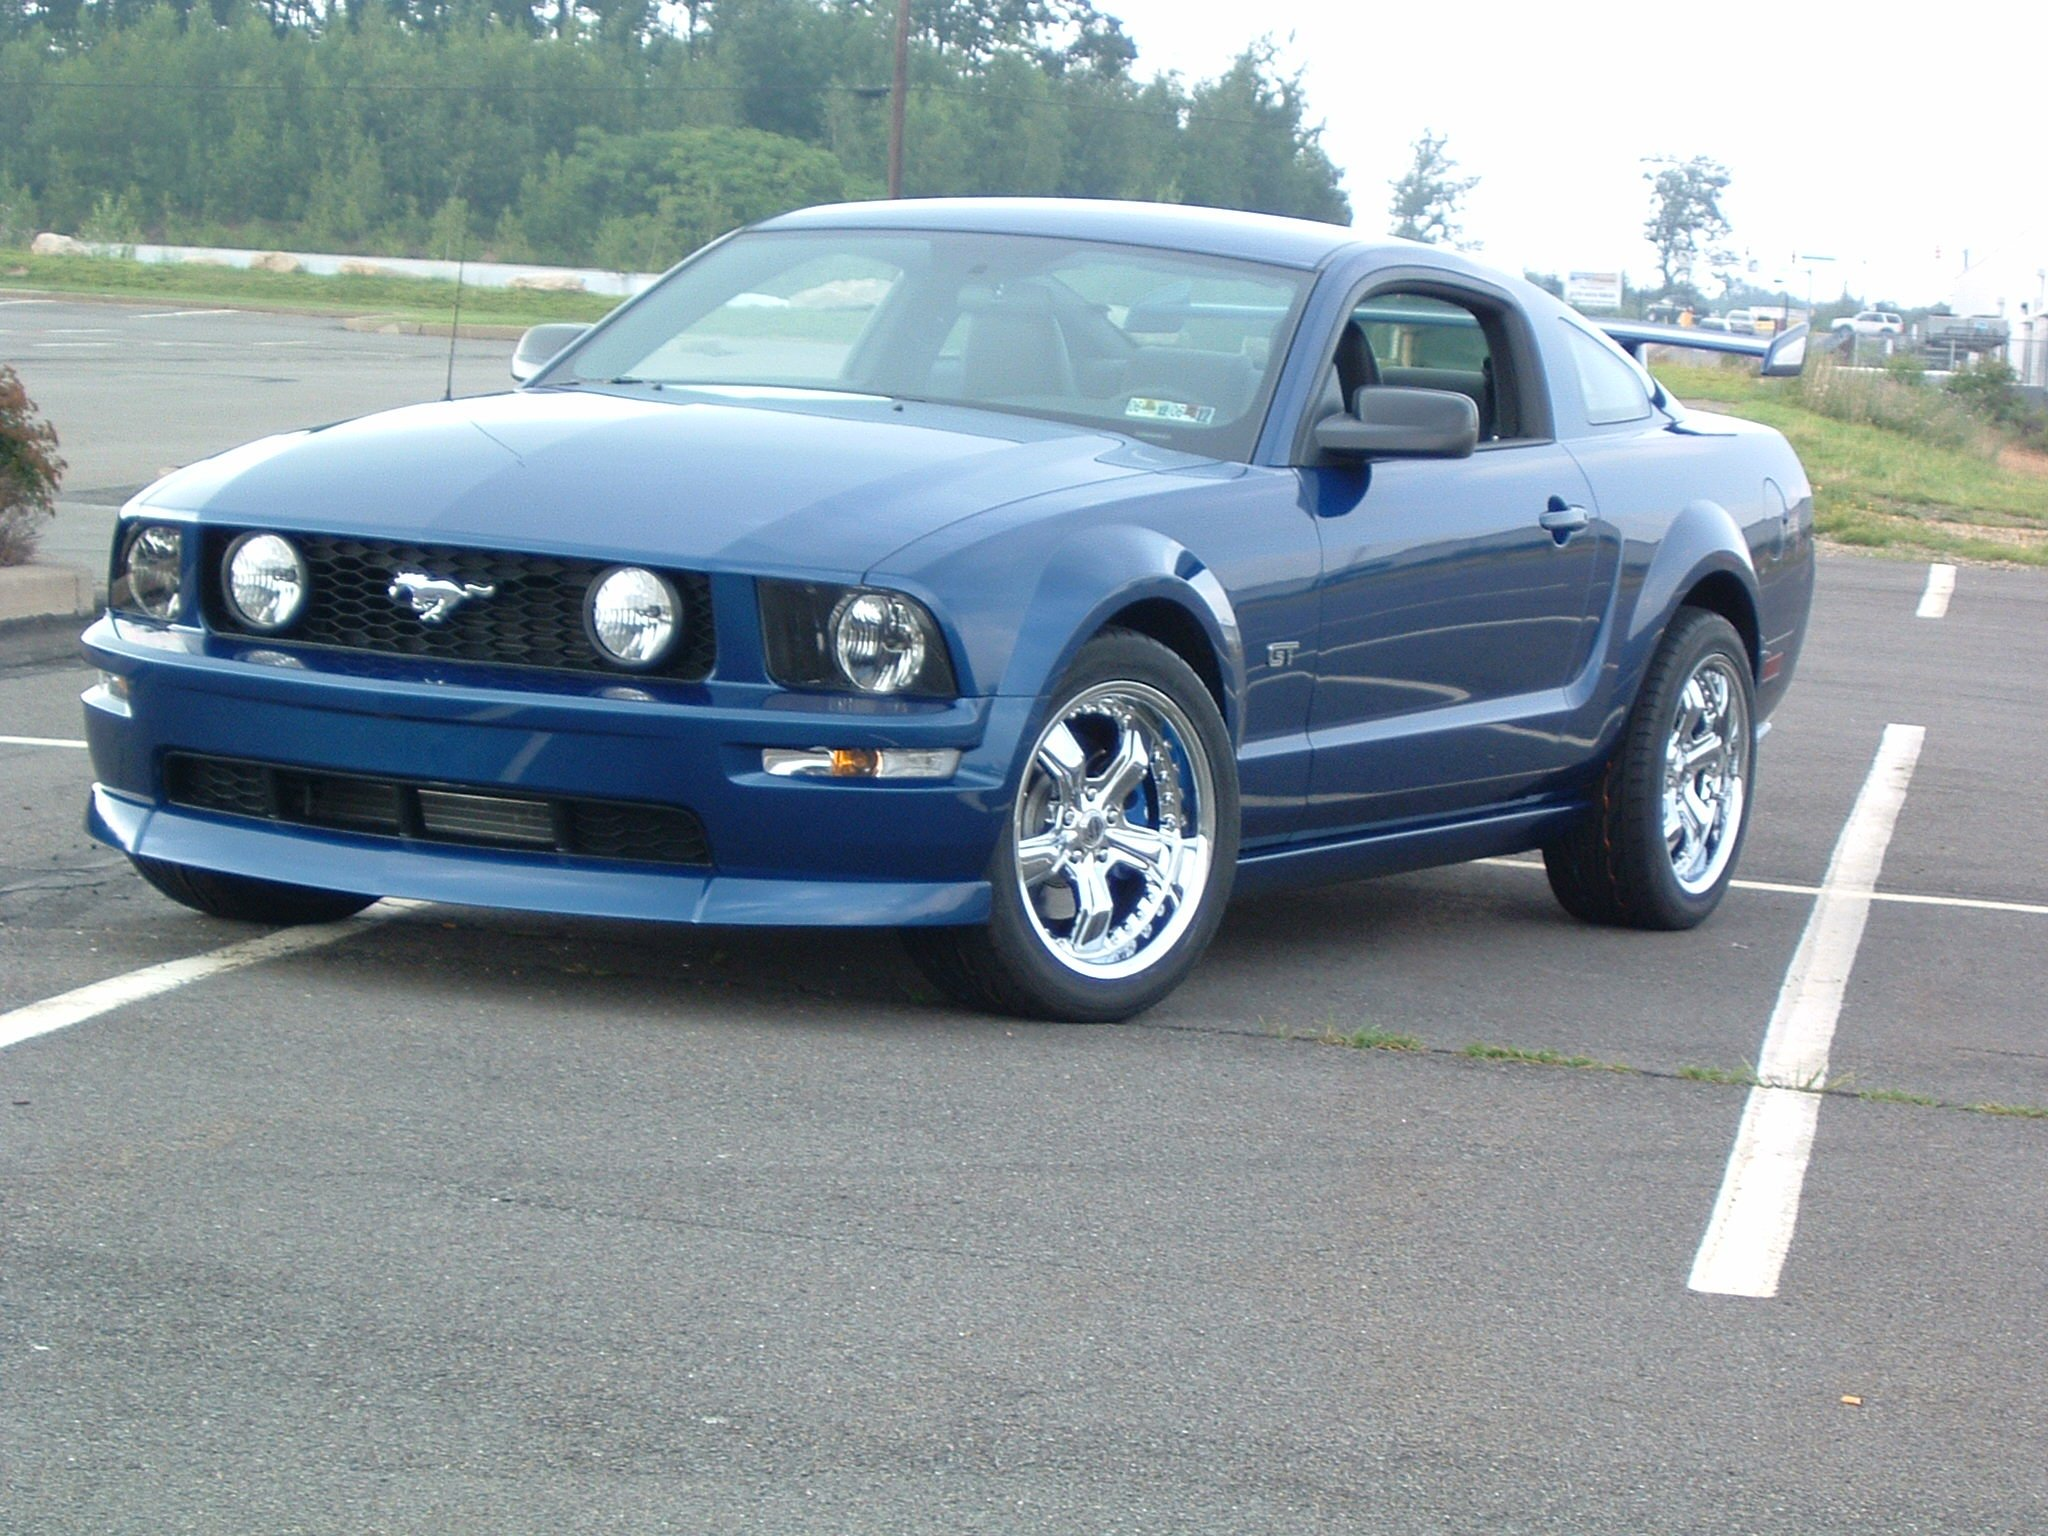 American Racing/Shelby Razor Wheels - Ford Mustang Forum